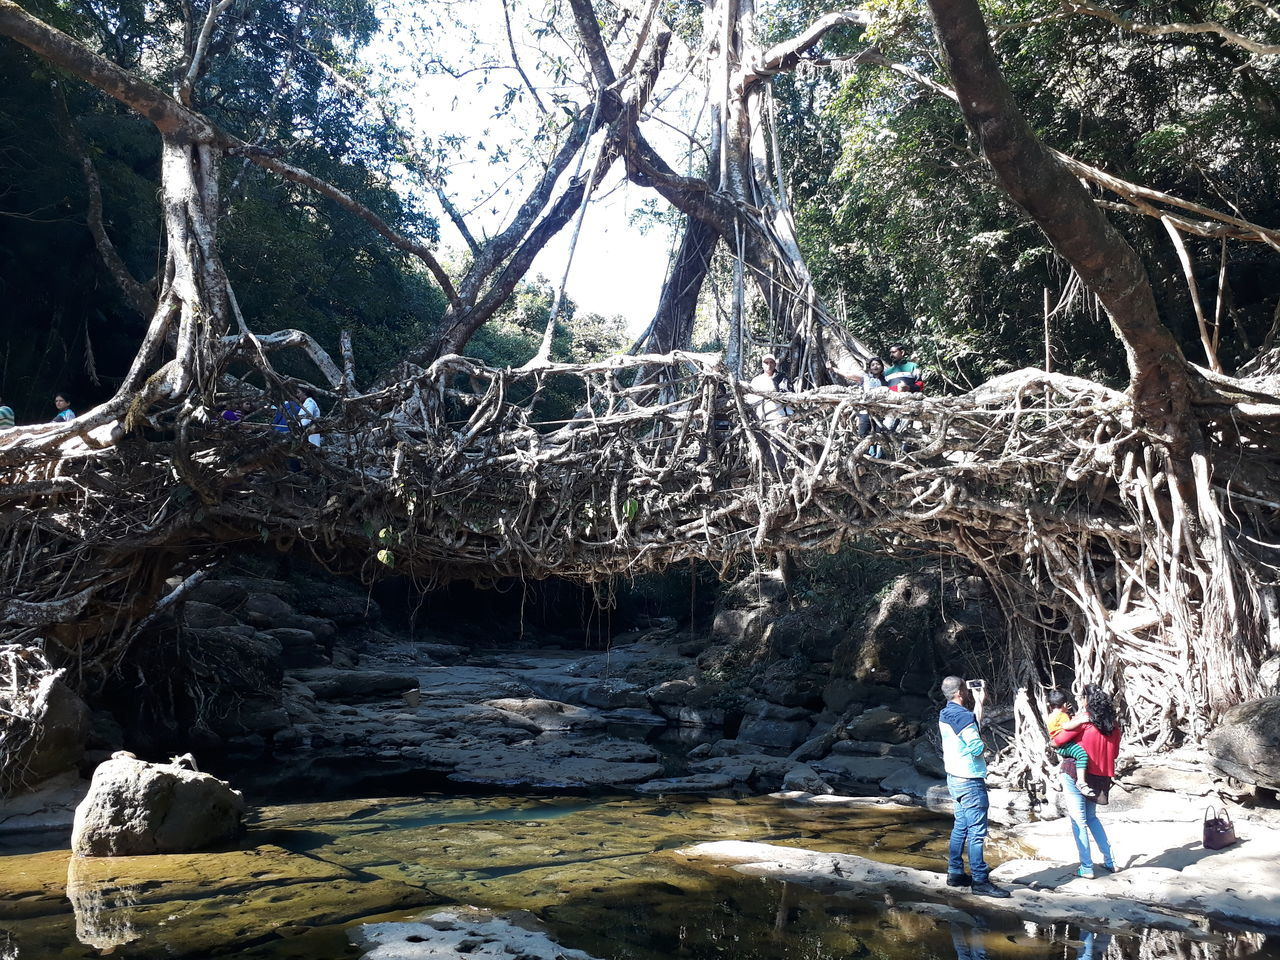 Living Root Bridge in Shillong Beauty In Nature Branch Cold Temperature Day Growth Hiking Men Nature Outdoors People Real People Scenics Snow Tree Tree Trunk Winter